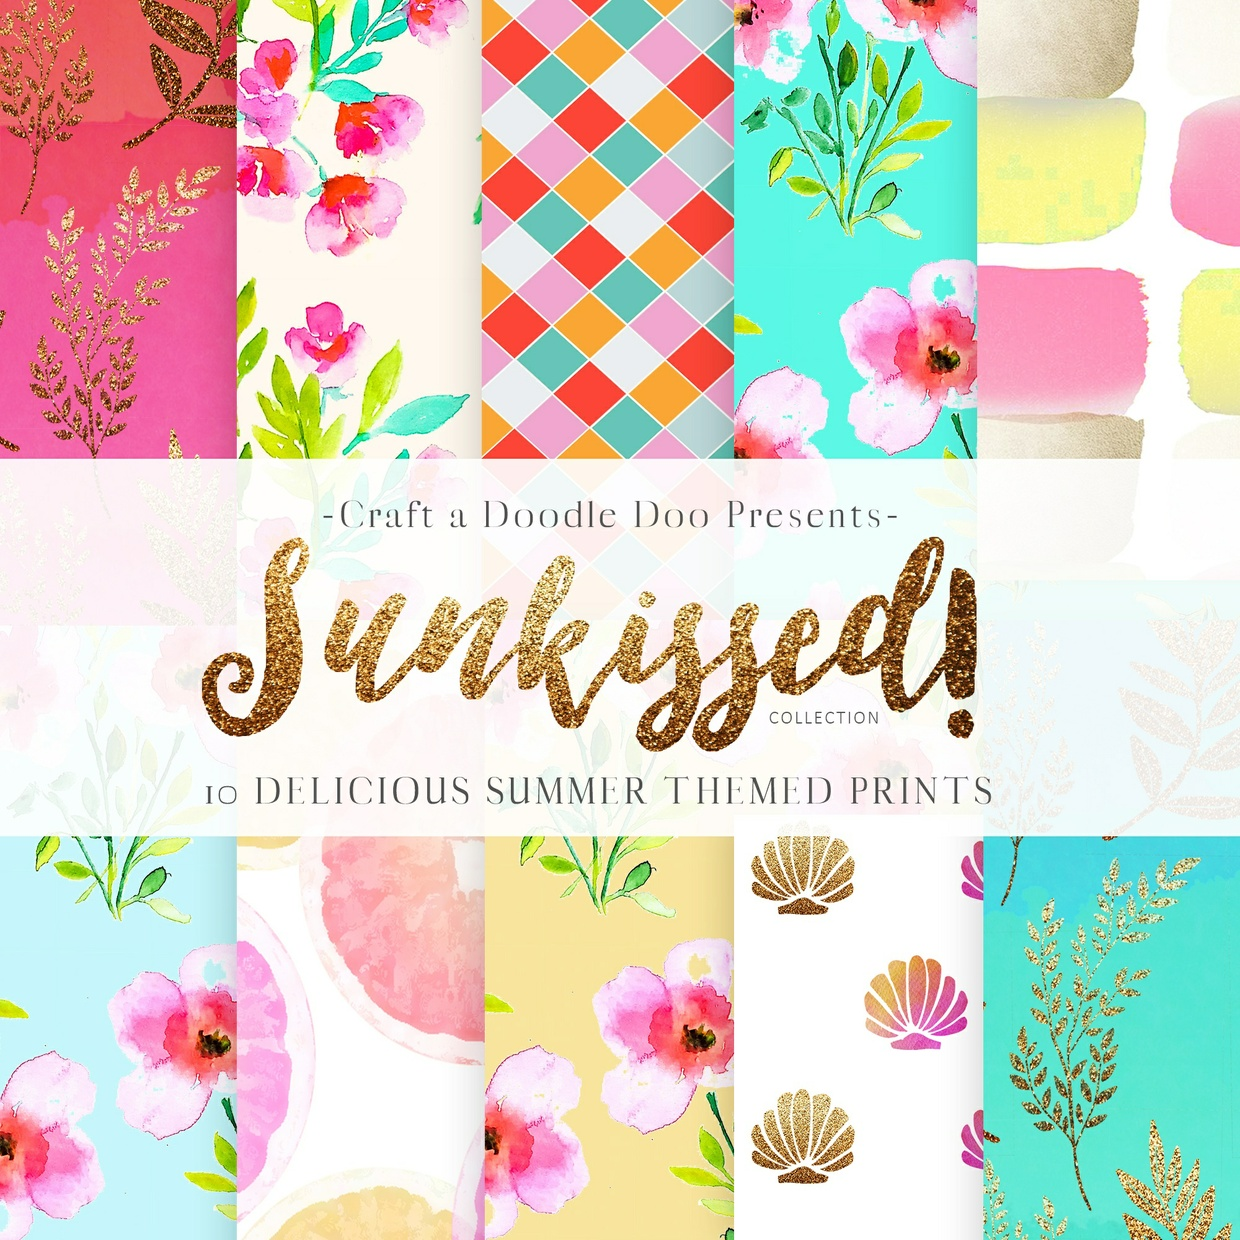 SUNKISSED SUMMER DIGITAL PRINTS COLLECTION